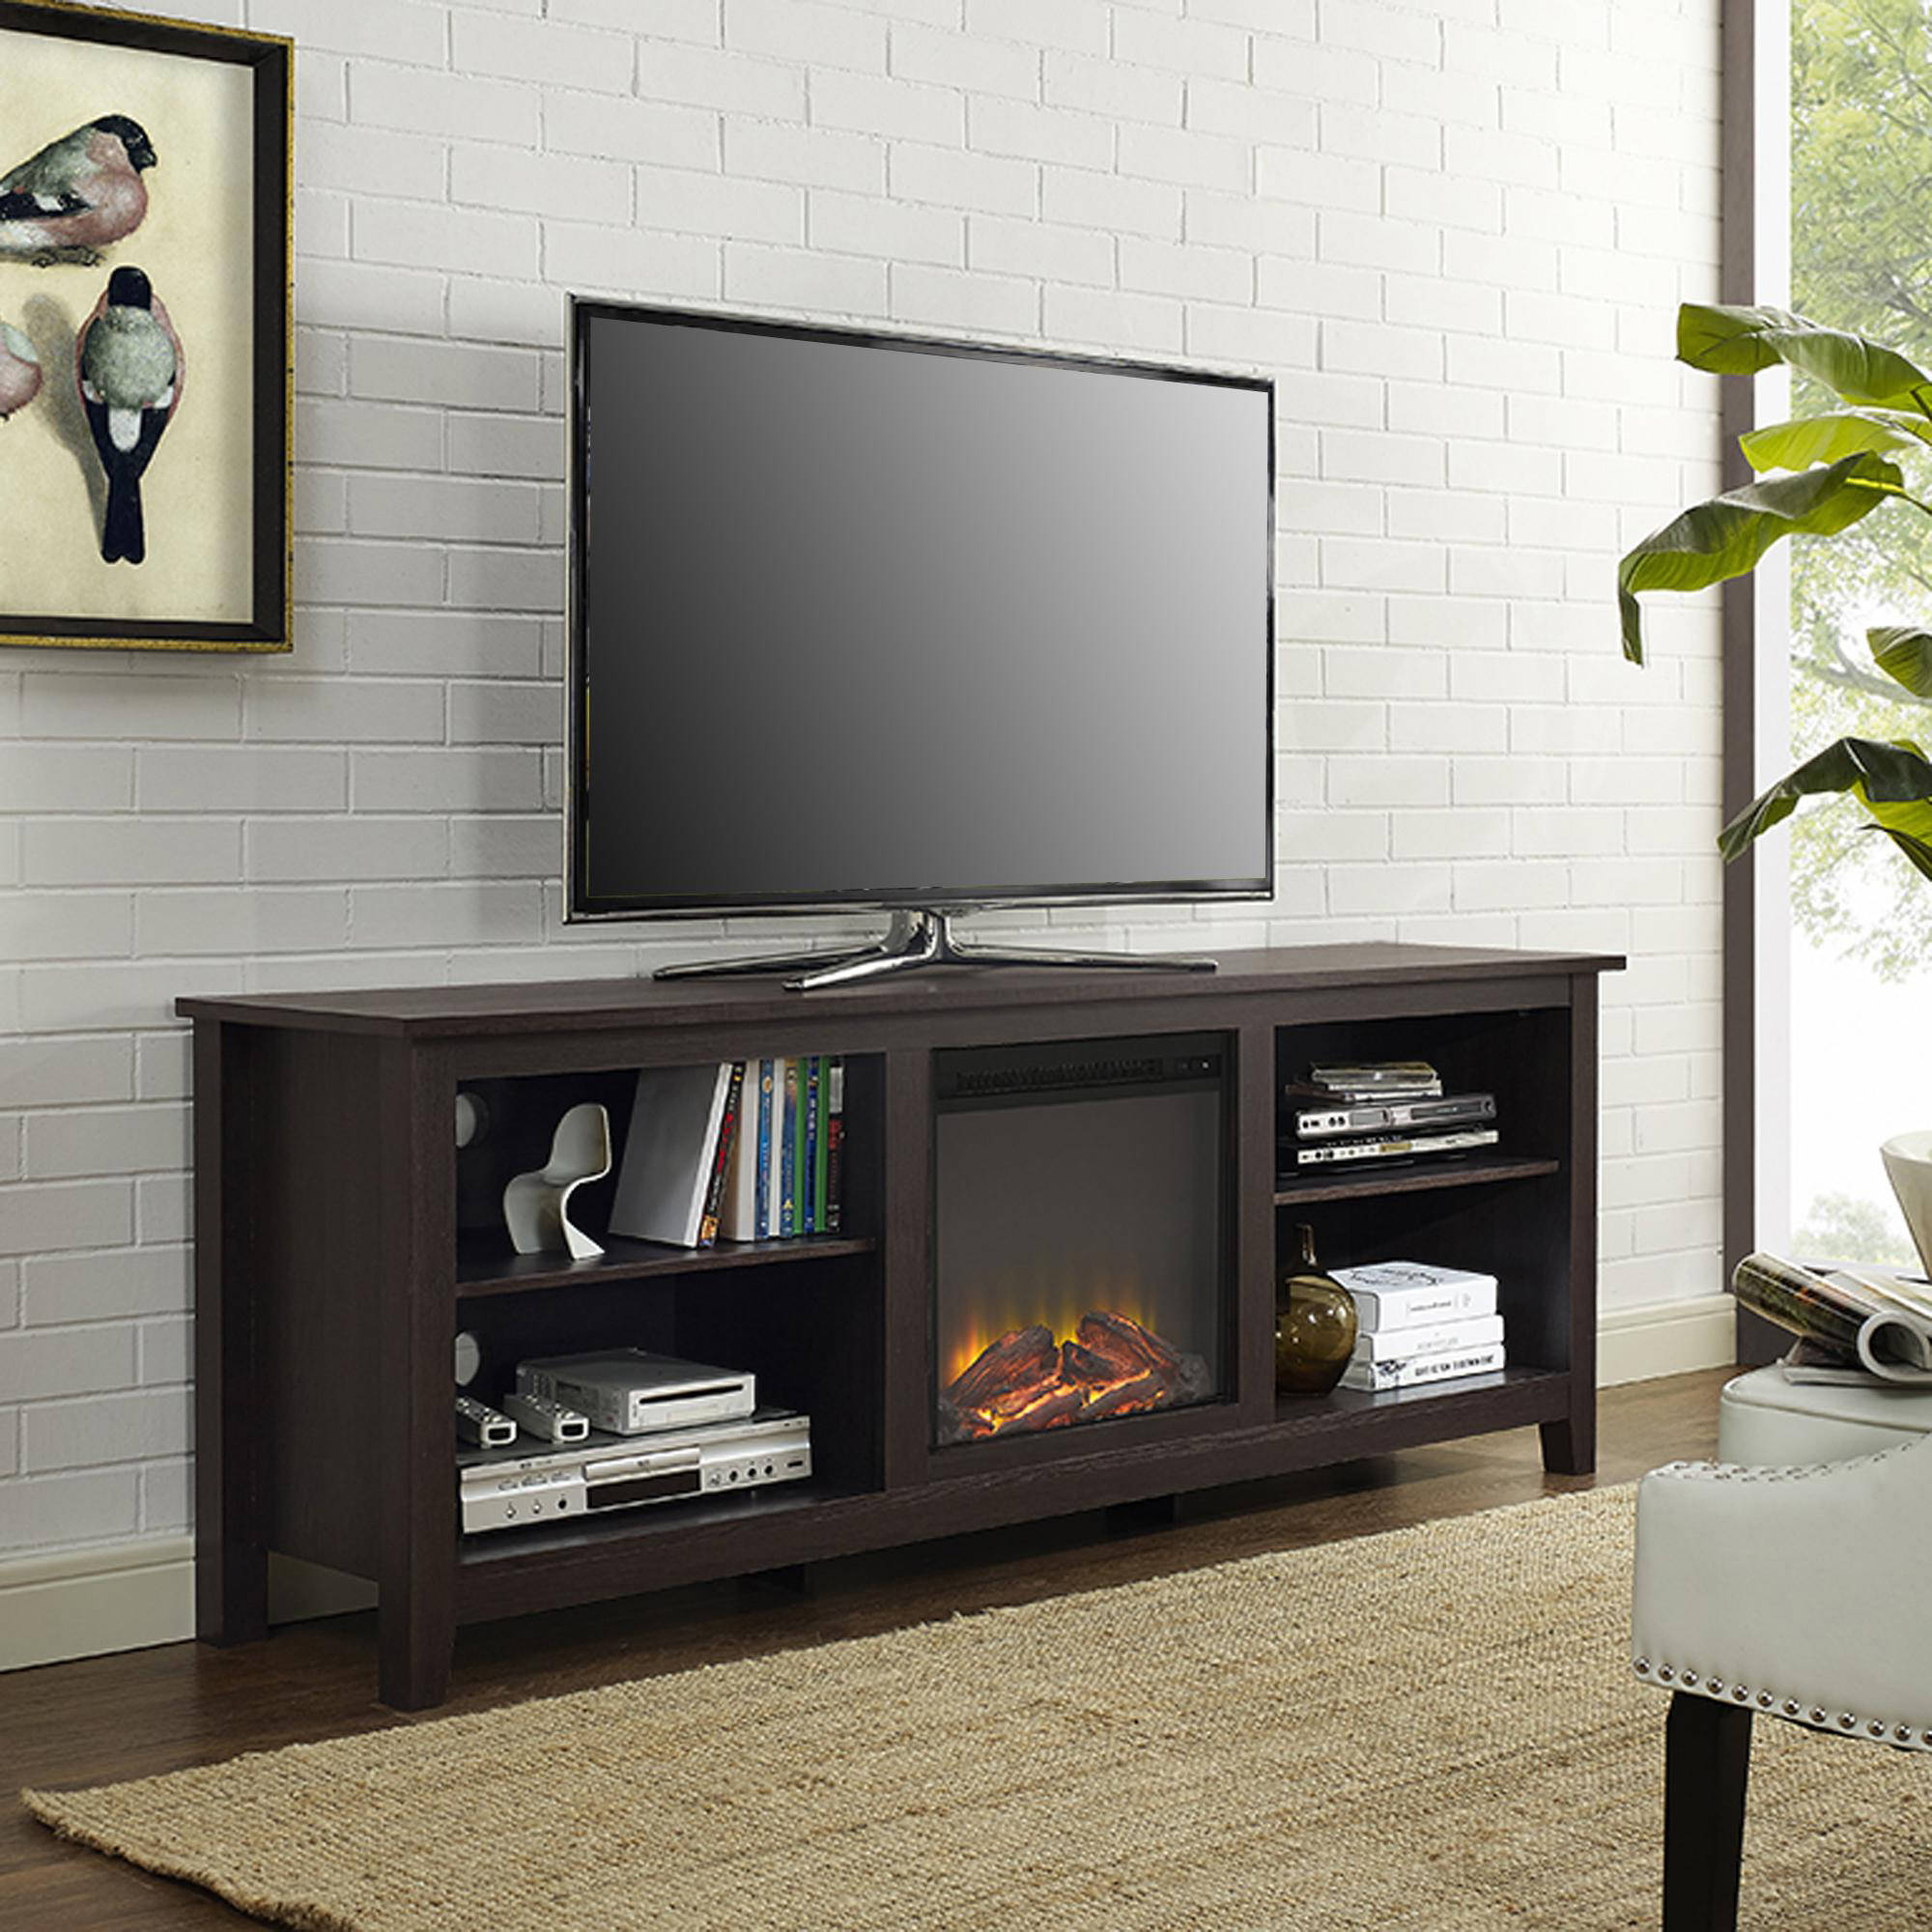 """Preferred Tv Stands For Large Tvs Throughout 70"""" Fireplace Tv Media Storage Stand For Tv's Up To 75"""" Espresso (Gallery 9 of 20)"""